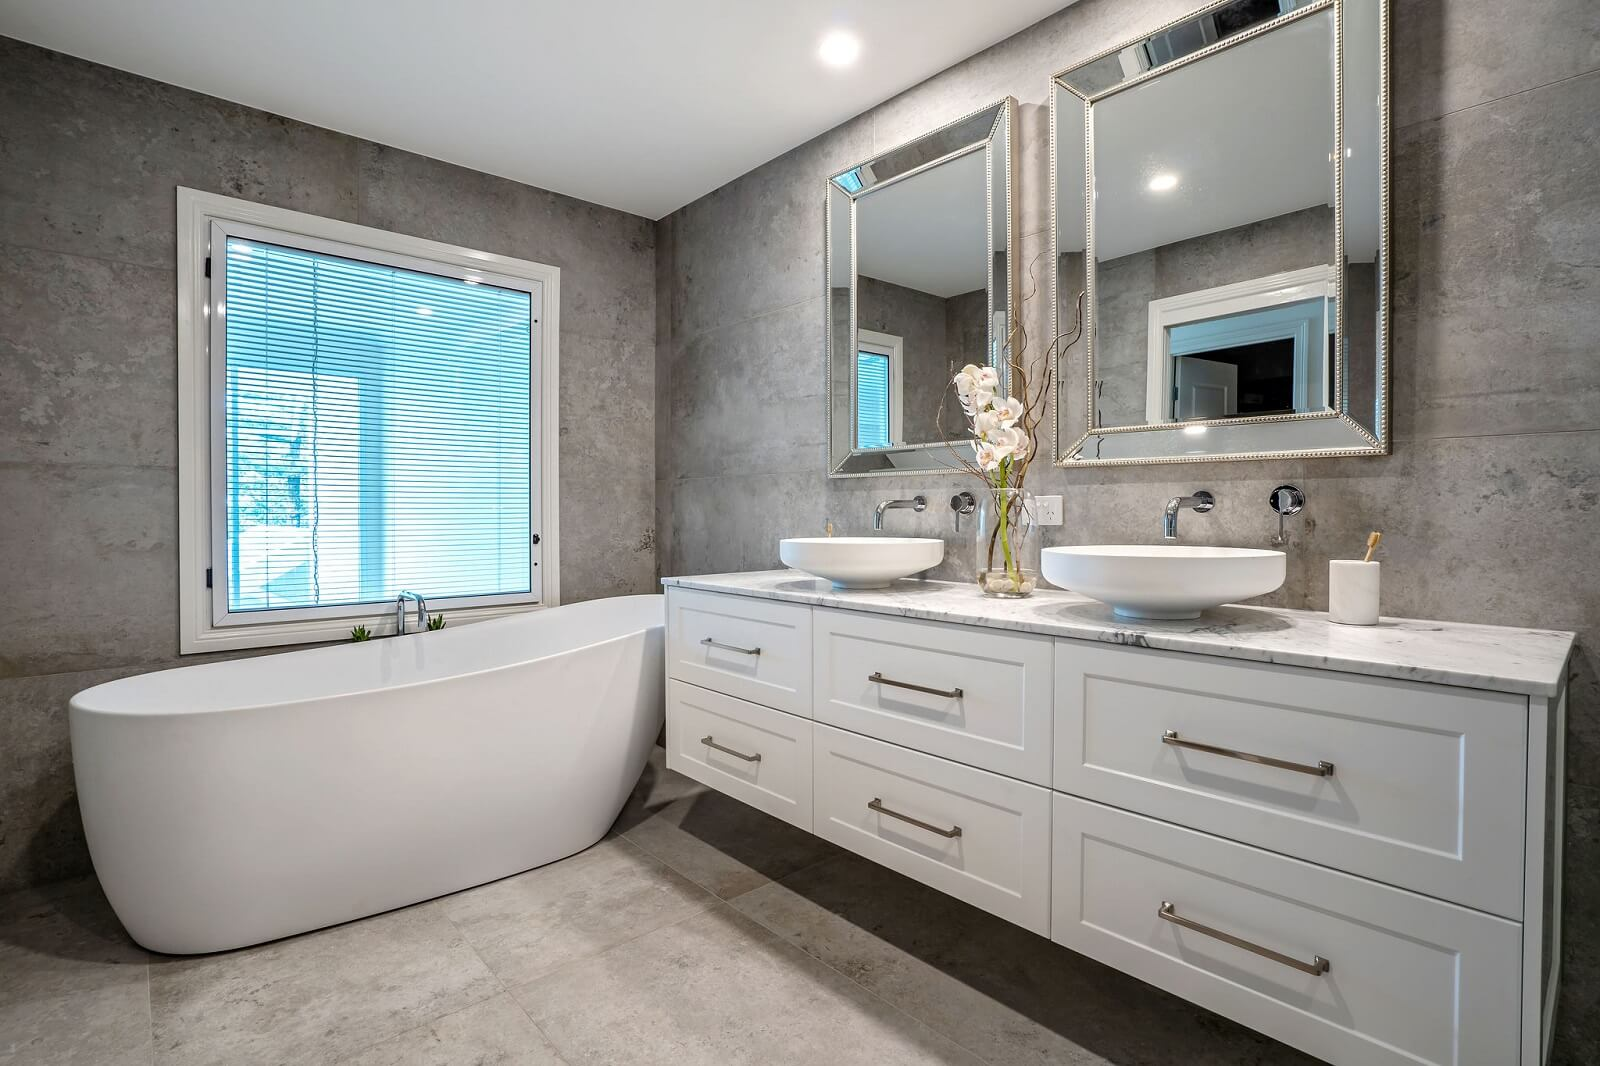 Why get a professional for bathroom renovations?